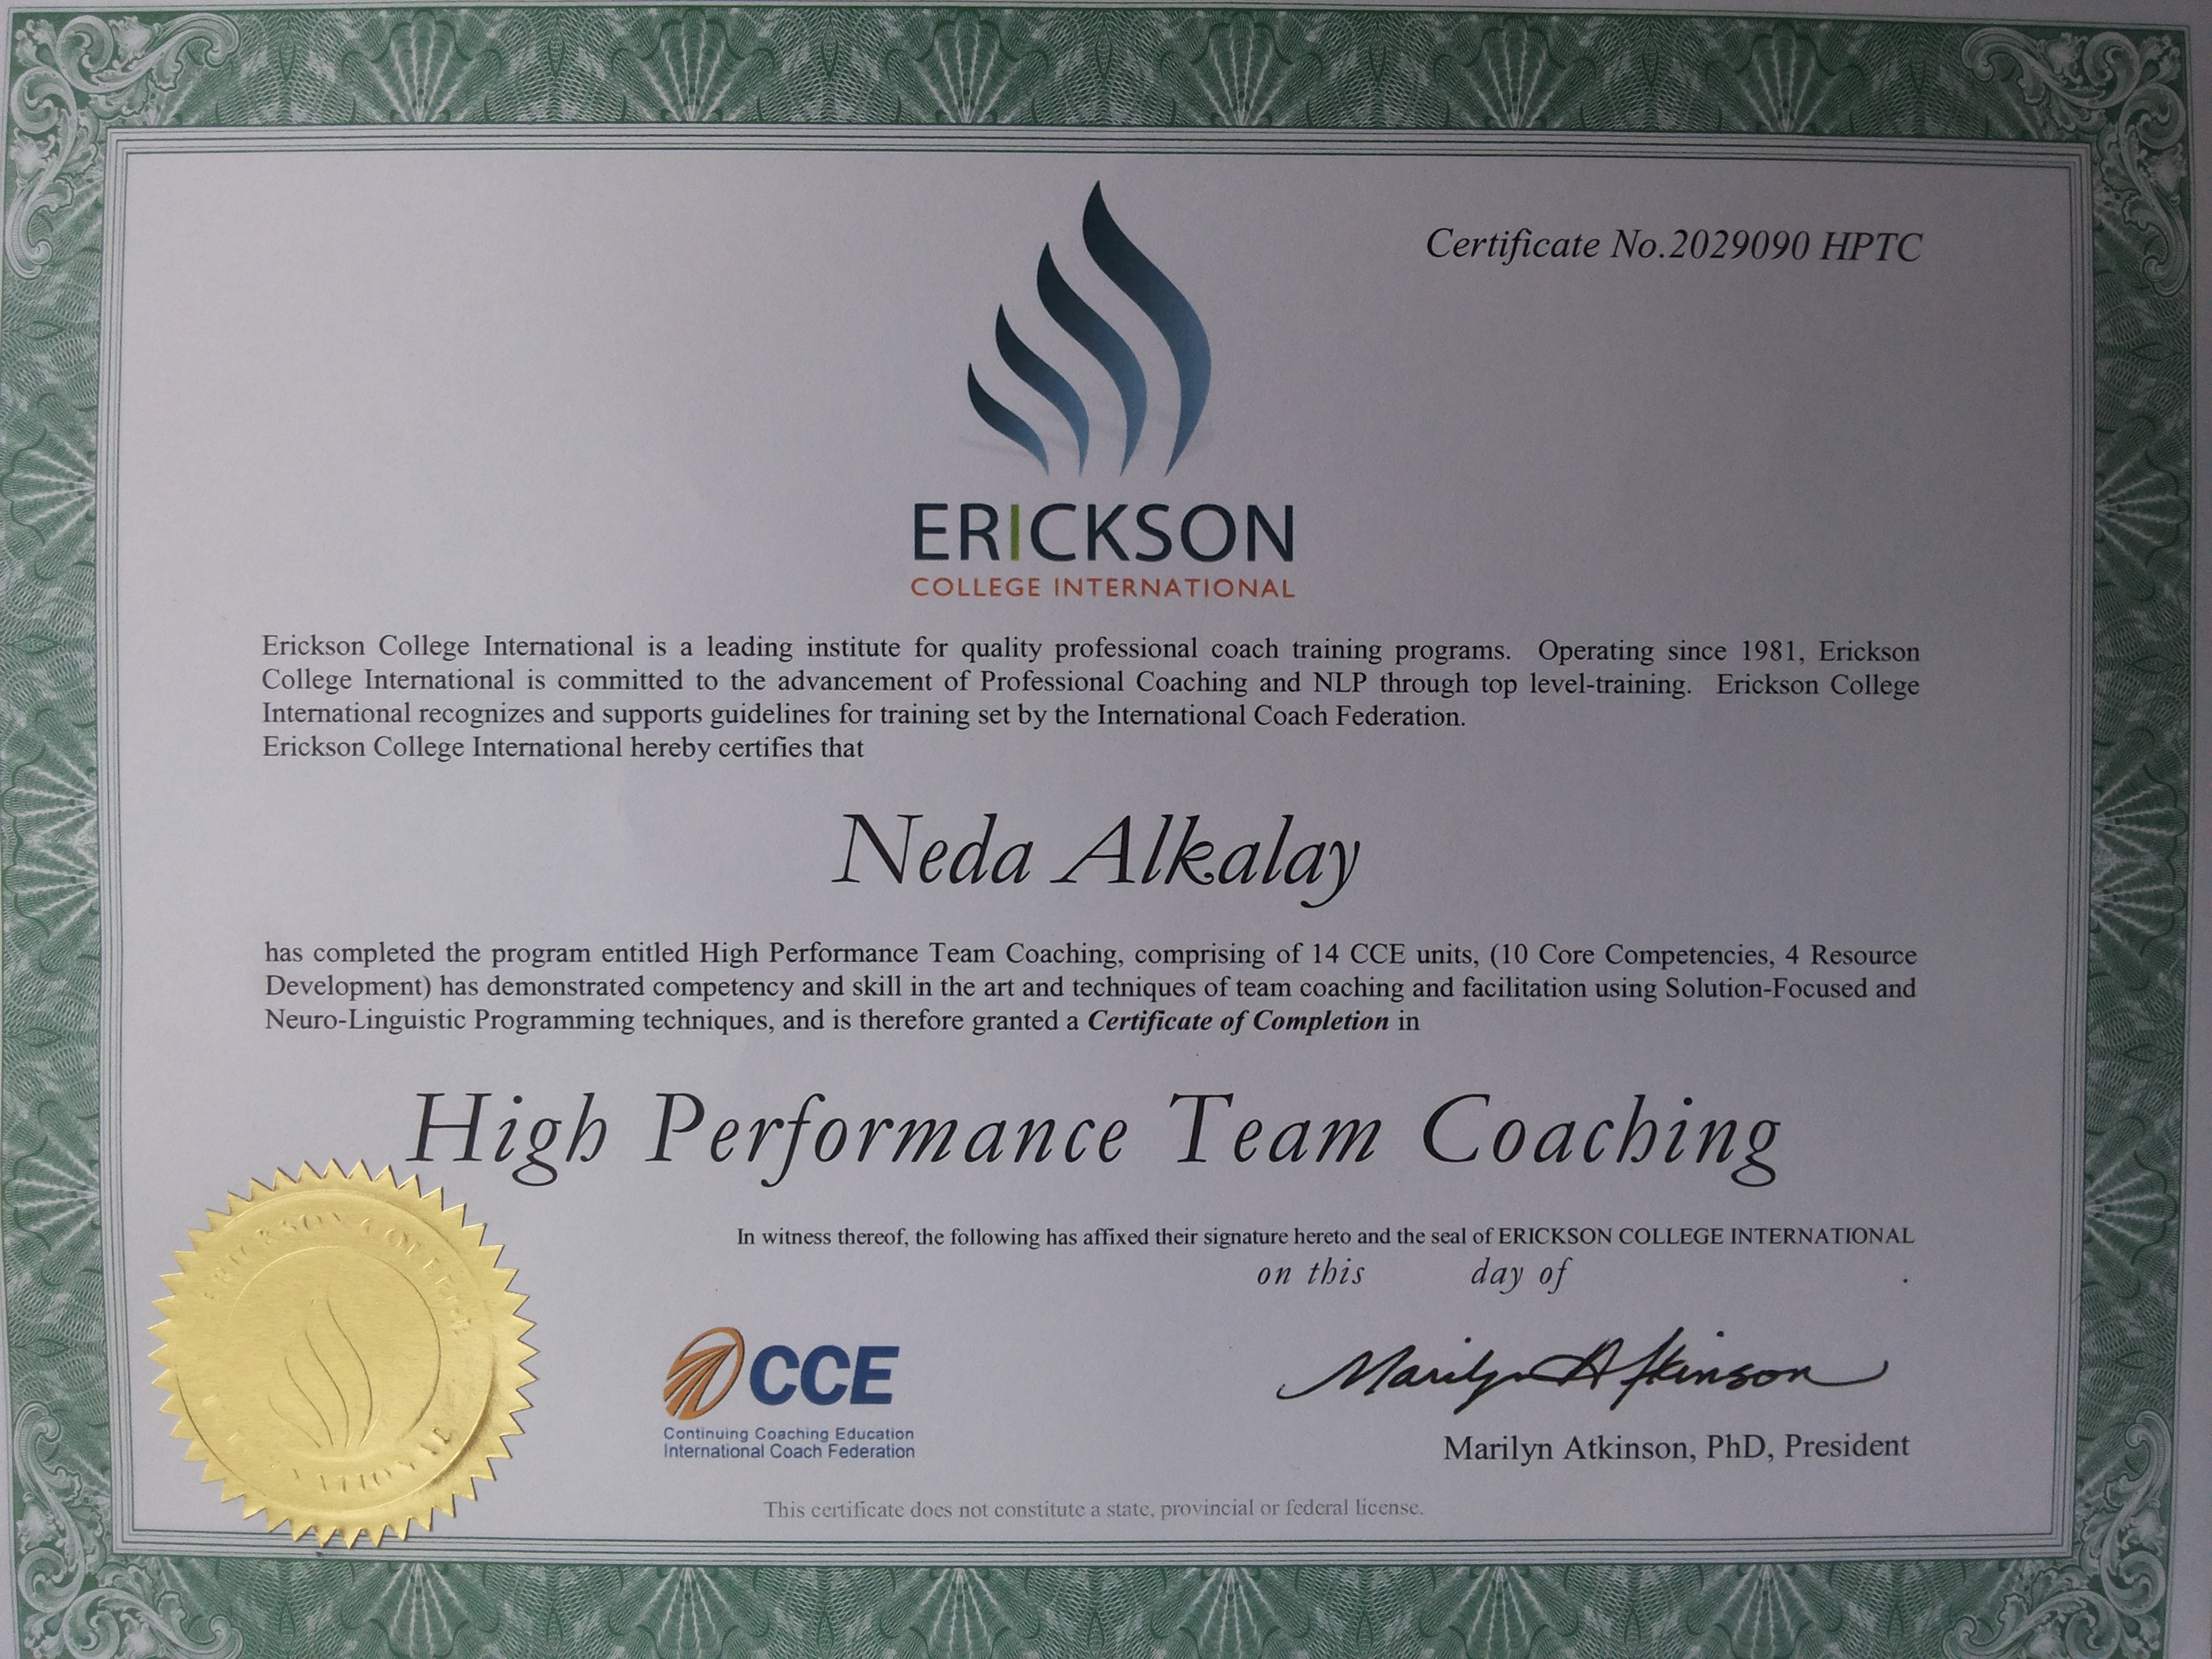 Neda Alkalay Erickson Certificate High Performance Team Coaching